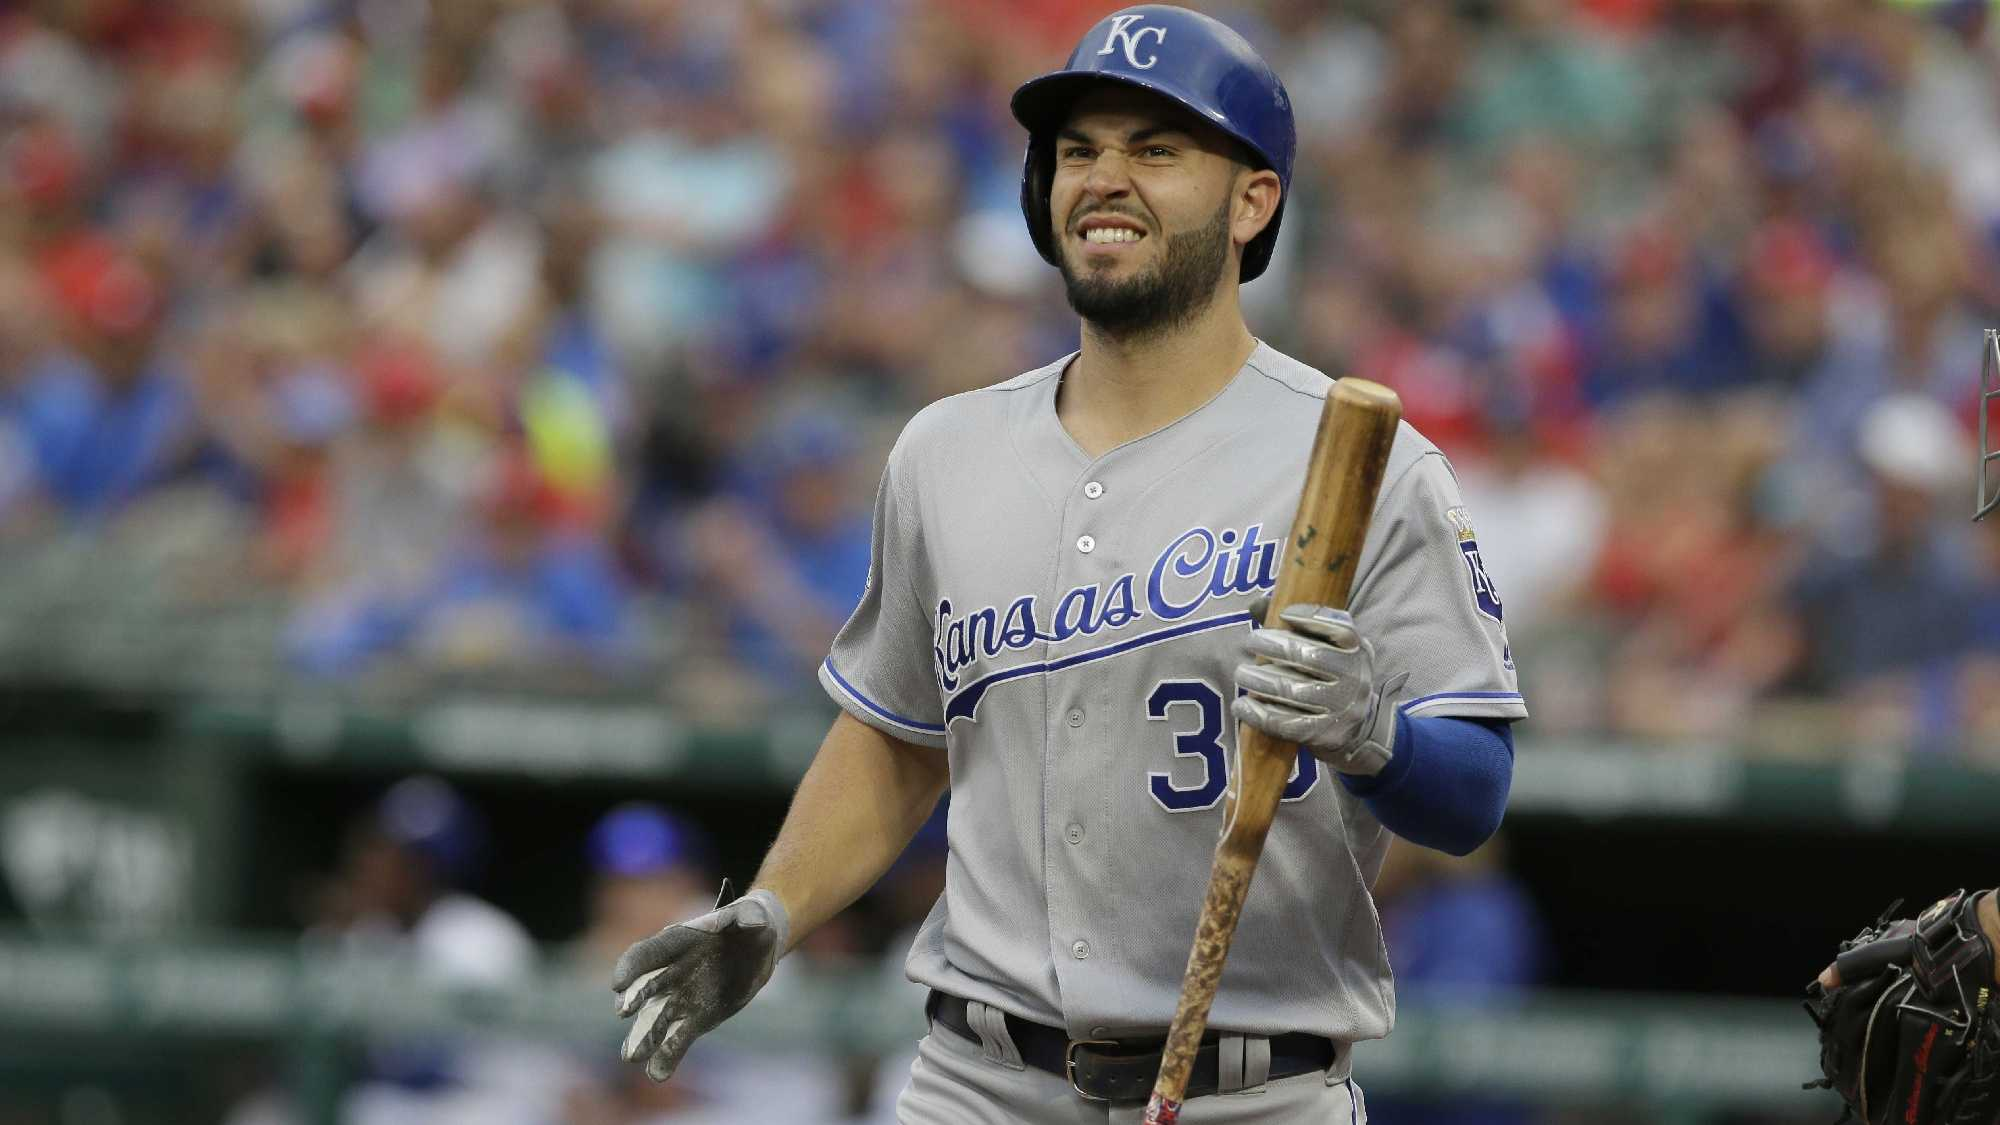 Kansas City Royals first baseman Eric Hosmer reacts to striking out during the first inning of a baseball game against the Texas Rangers in Arlington, Texas, Thursday, July 28, 2016. (AP Photo/LM Otero)